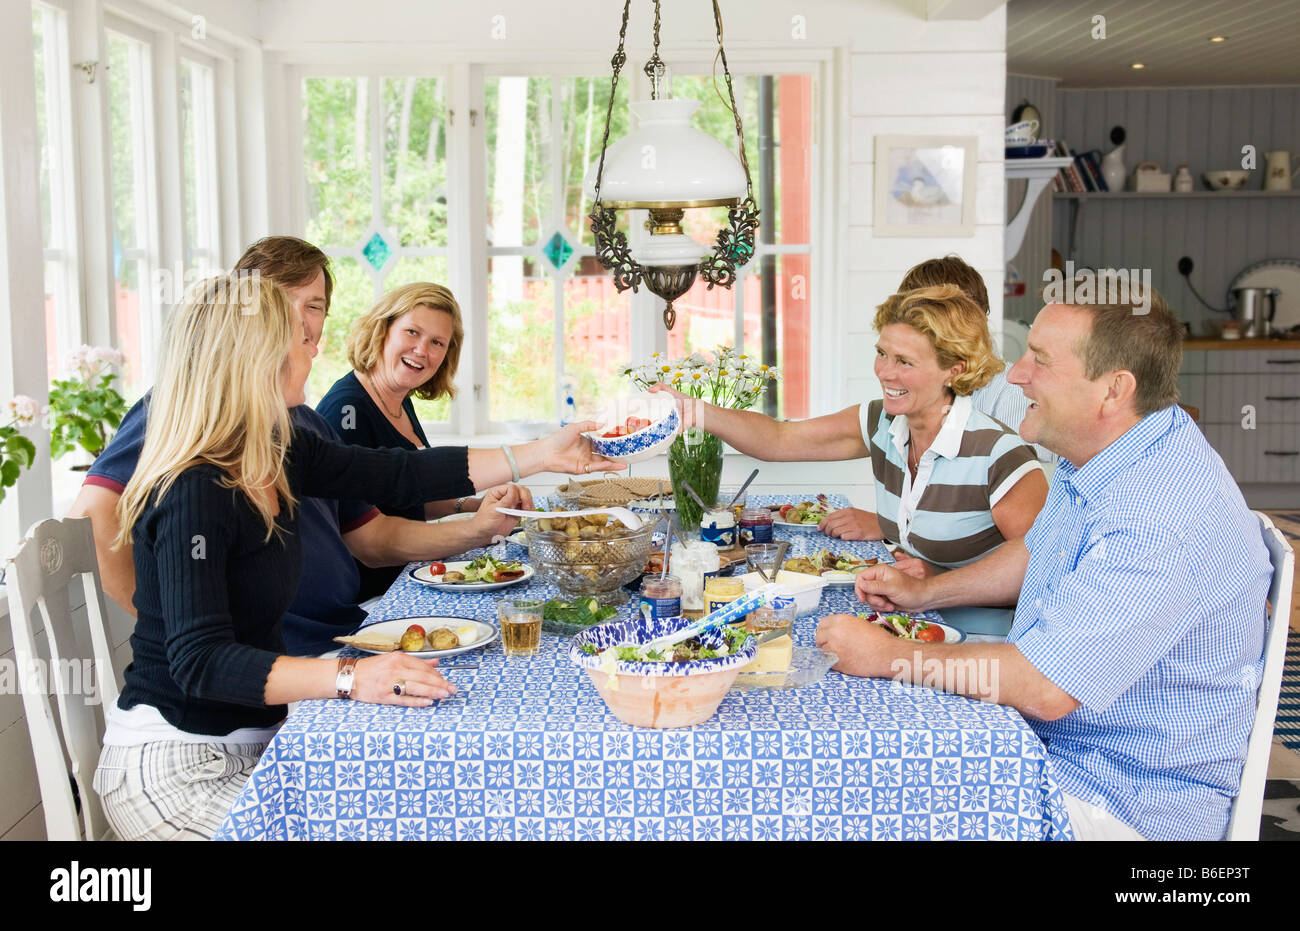 Dinner party with six people - Stock Image